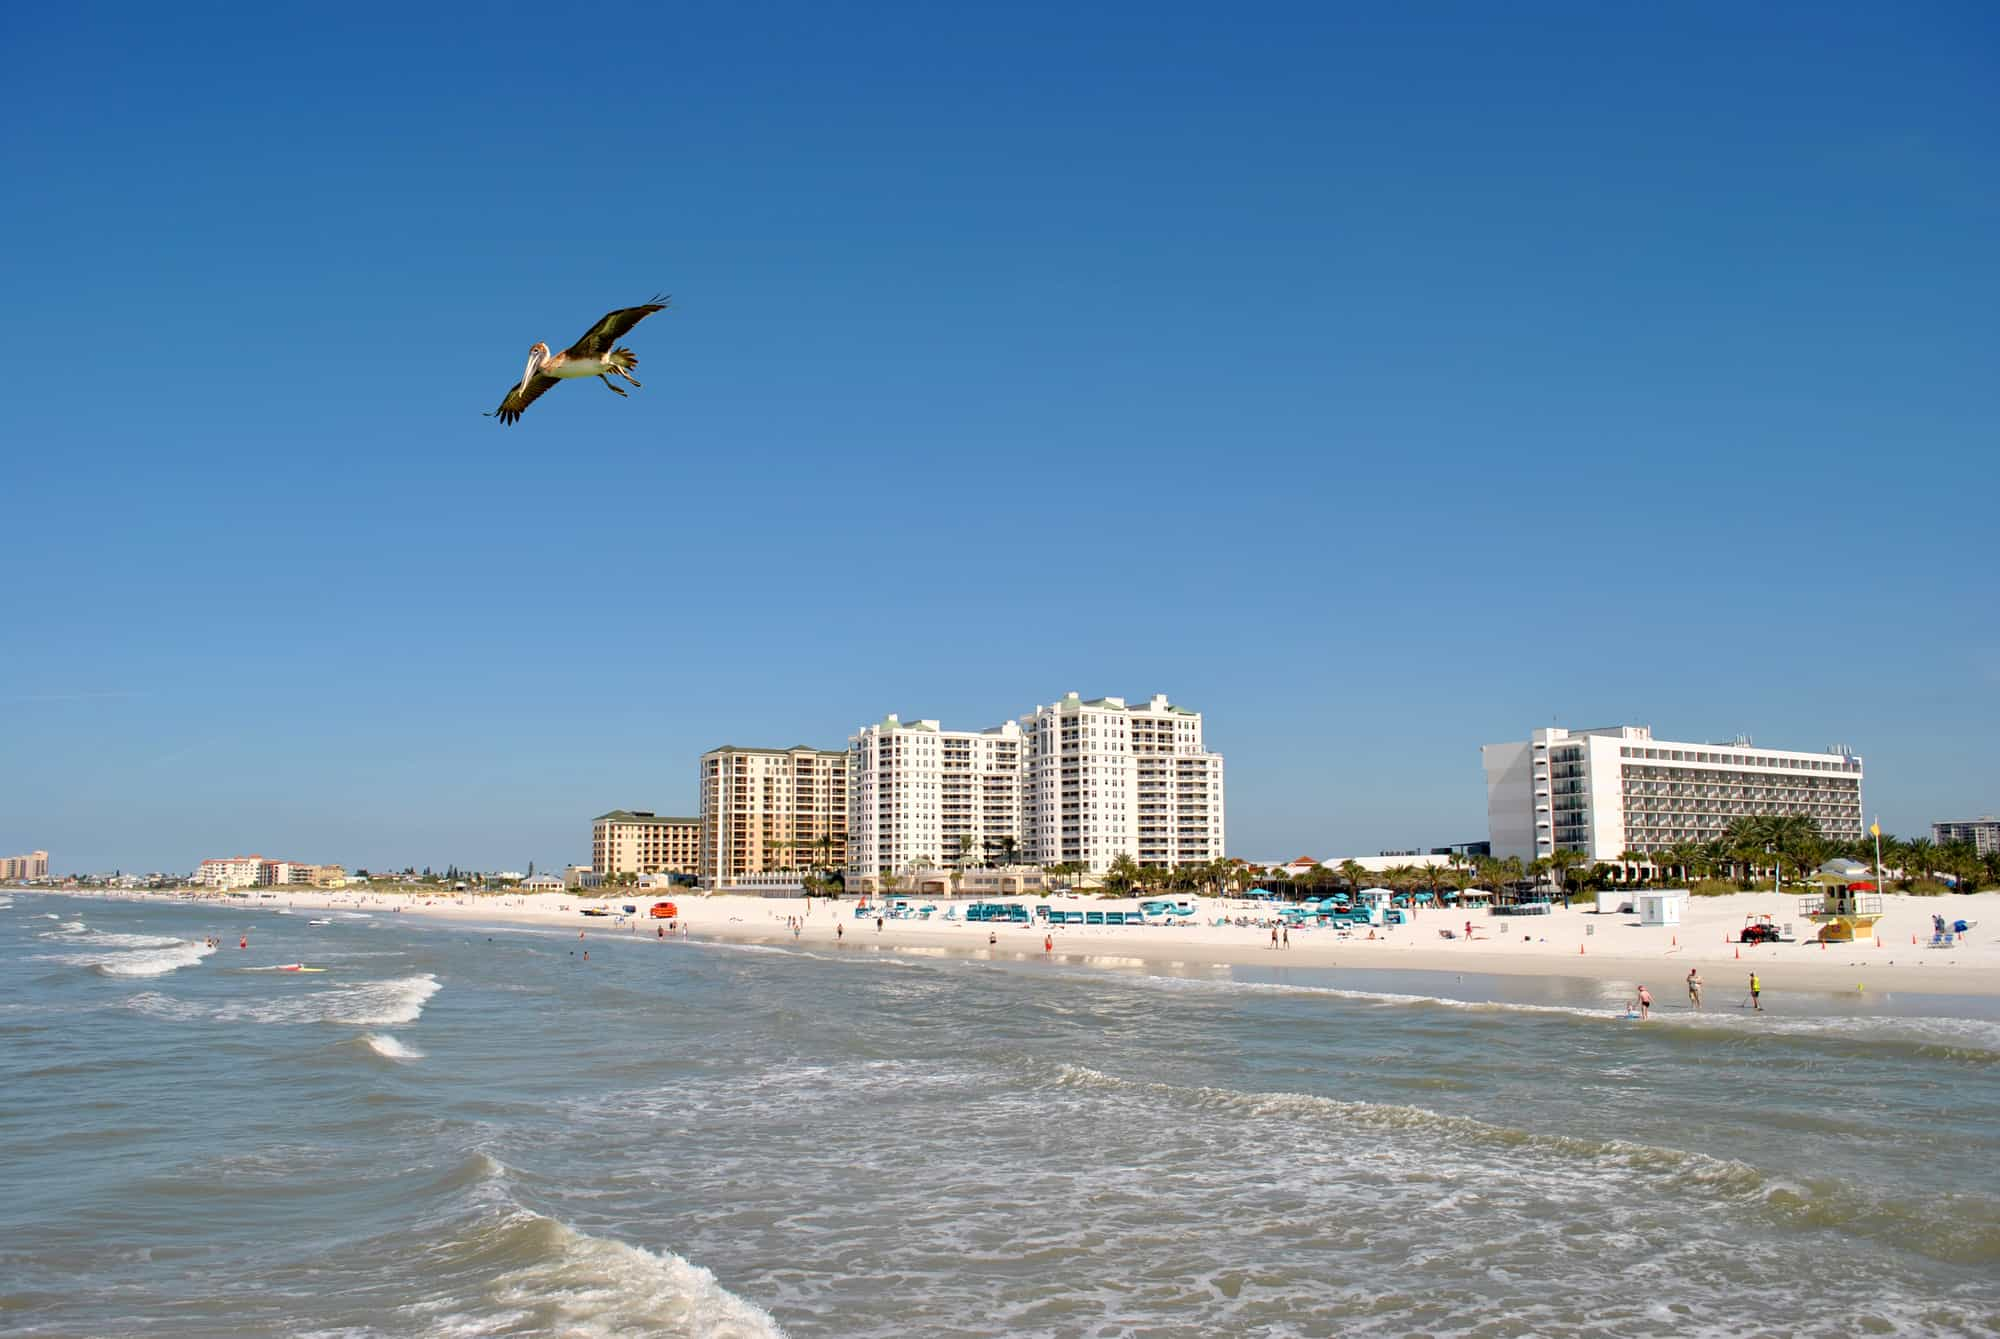 Beach, ocean, and hotels In Clearwater Beach, Florida